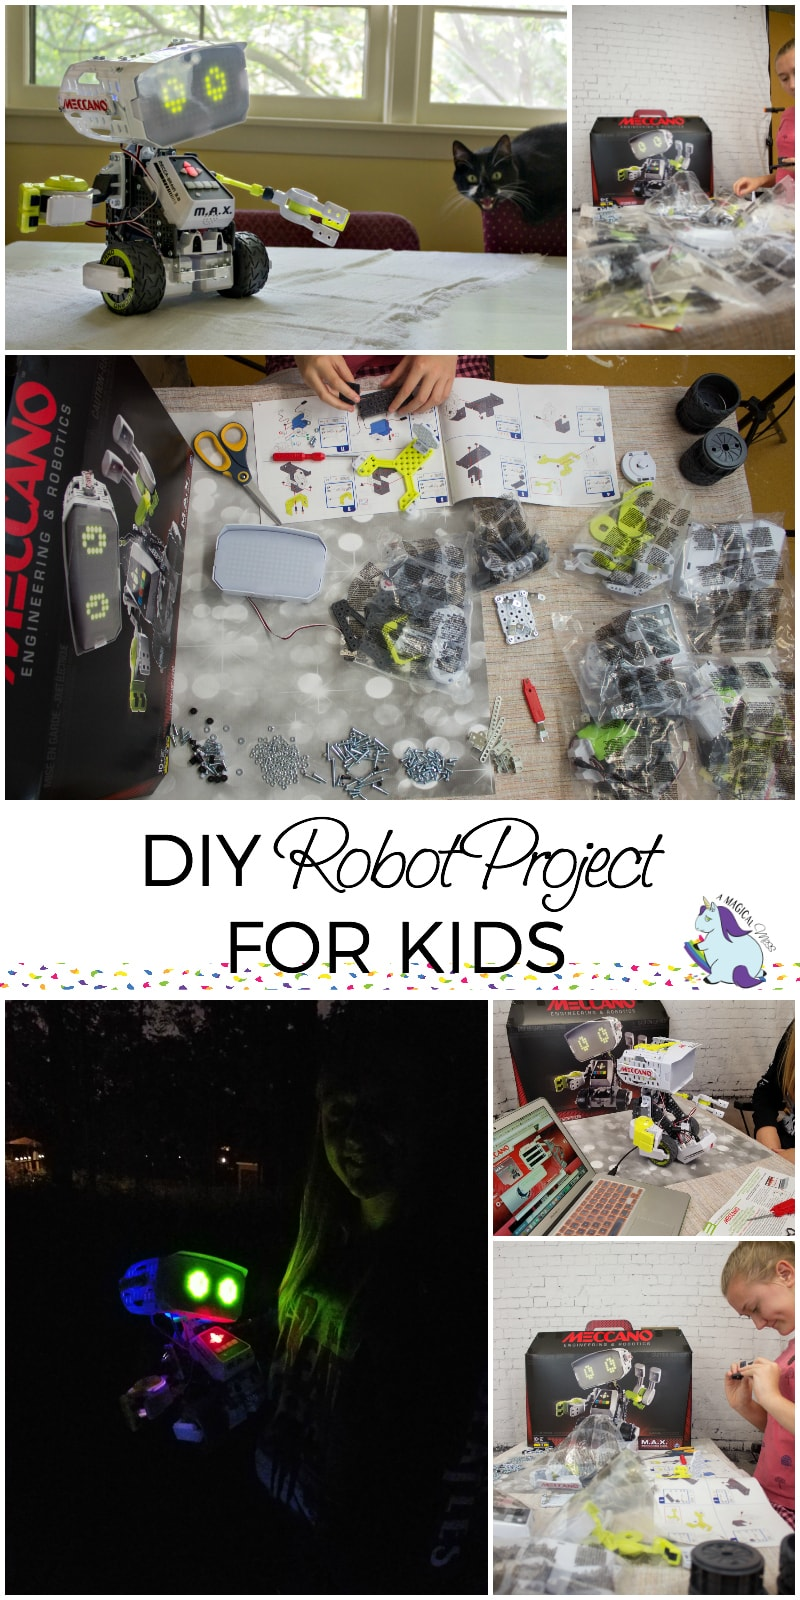 DIY Projects for Kids - The Coolest Robot in Town Meccano M.A.X. #Meccano #MAXRobot AD